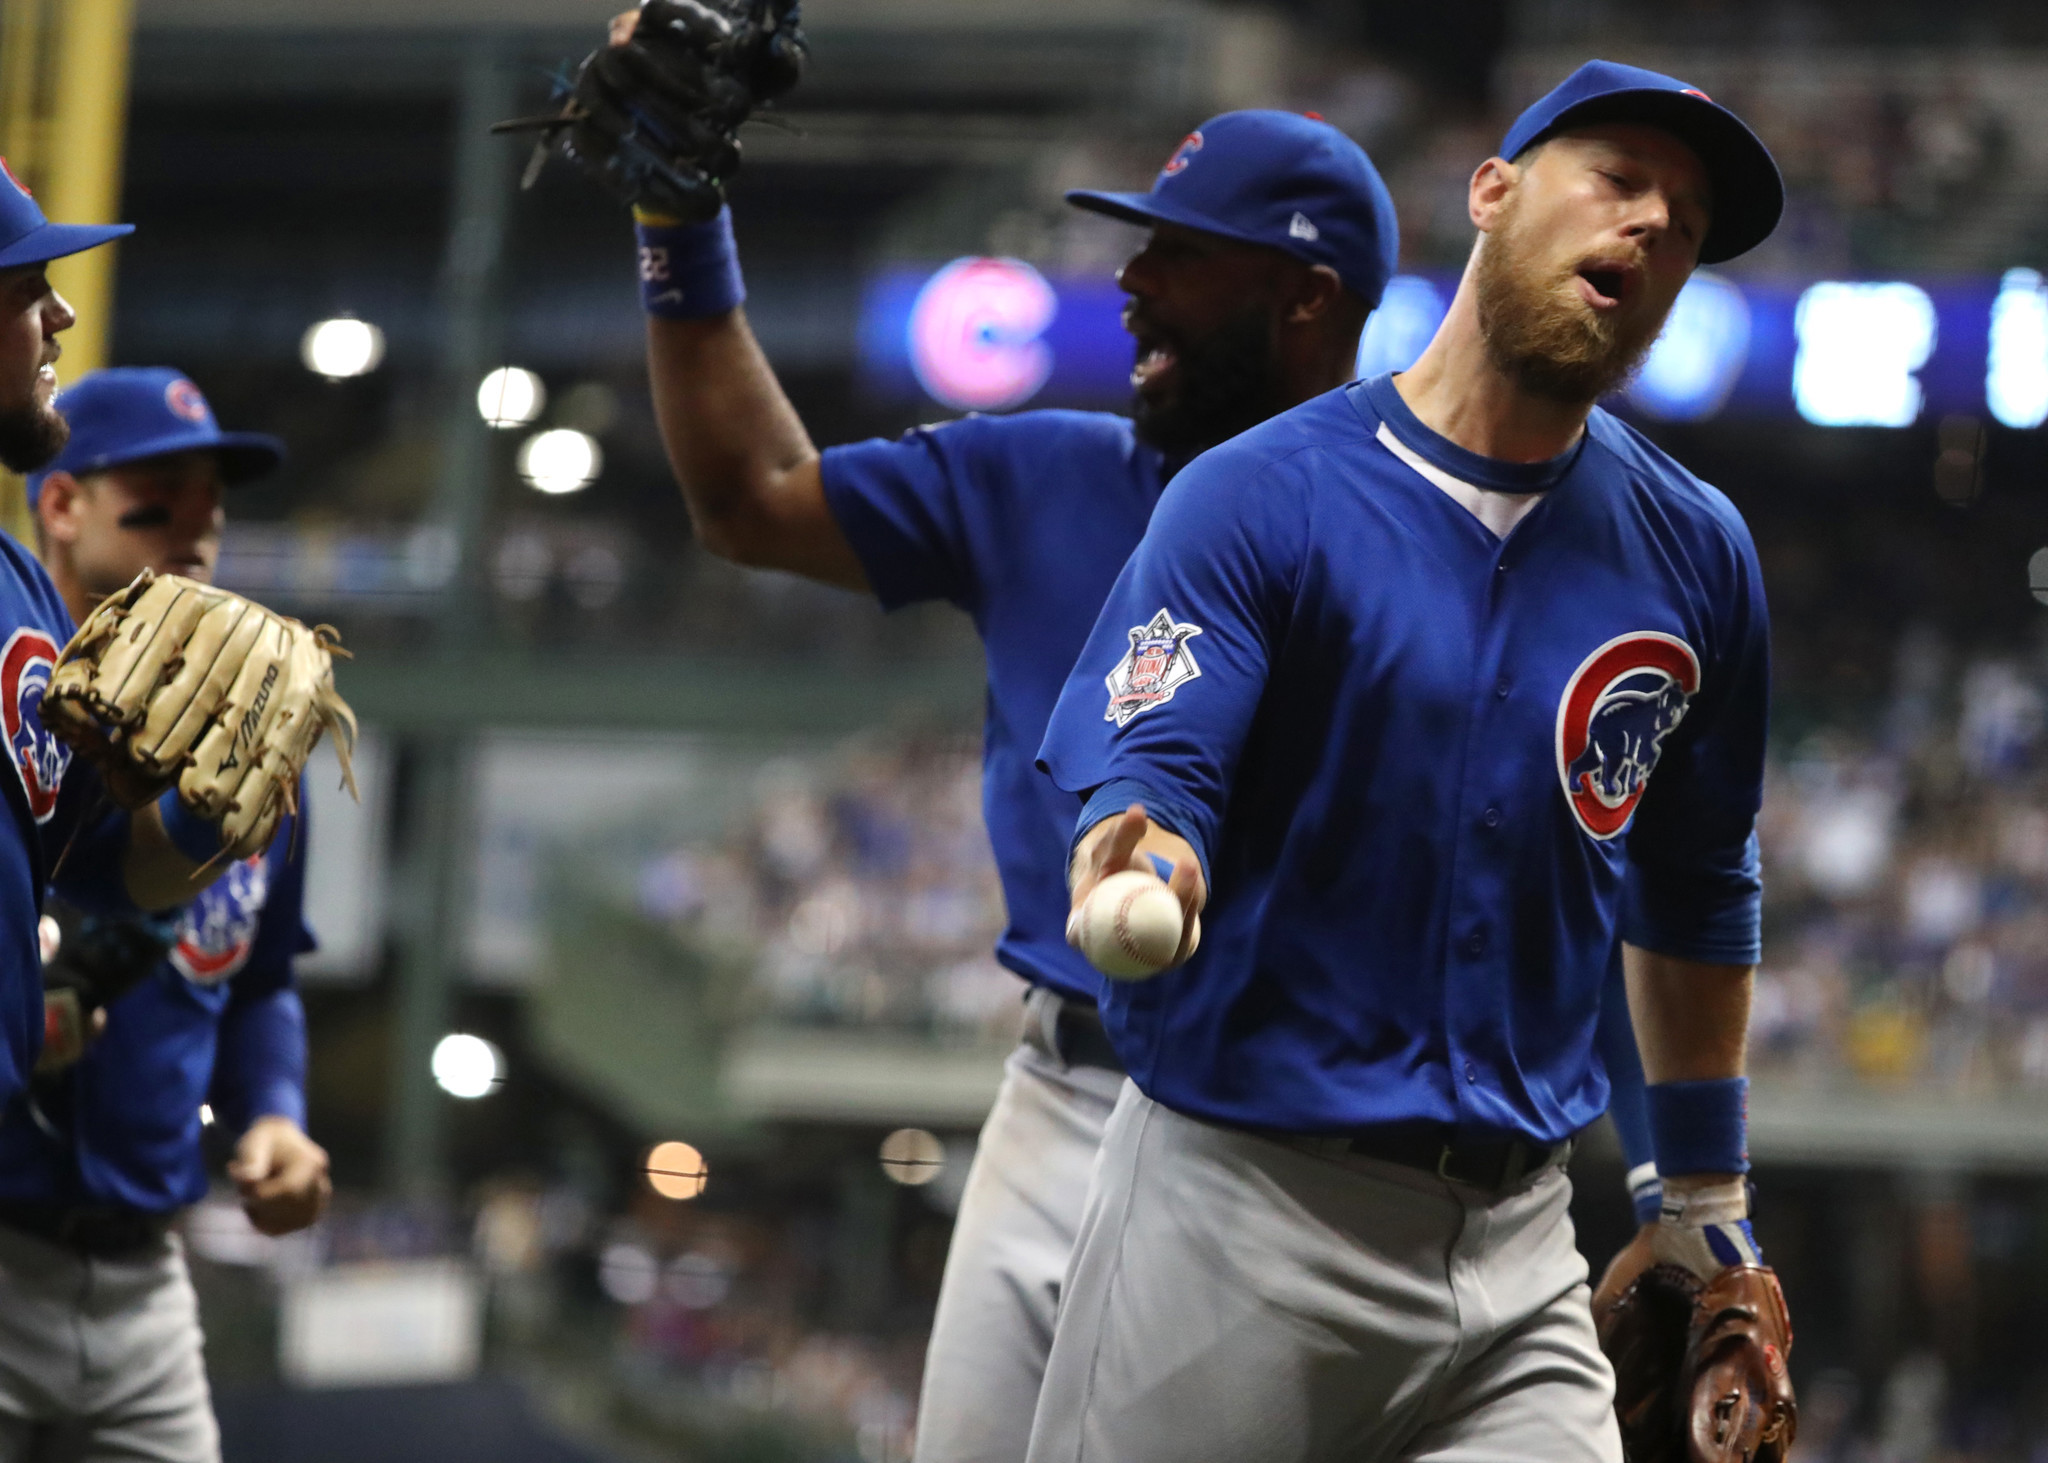 'Retreats' help Cubs deal with tense moments like wild games with Brewers